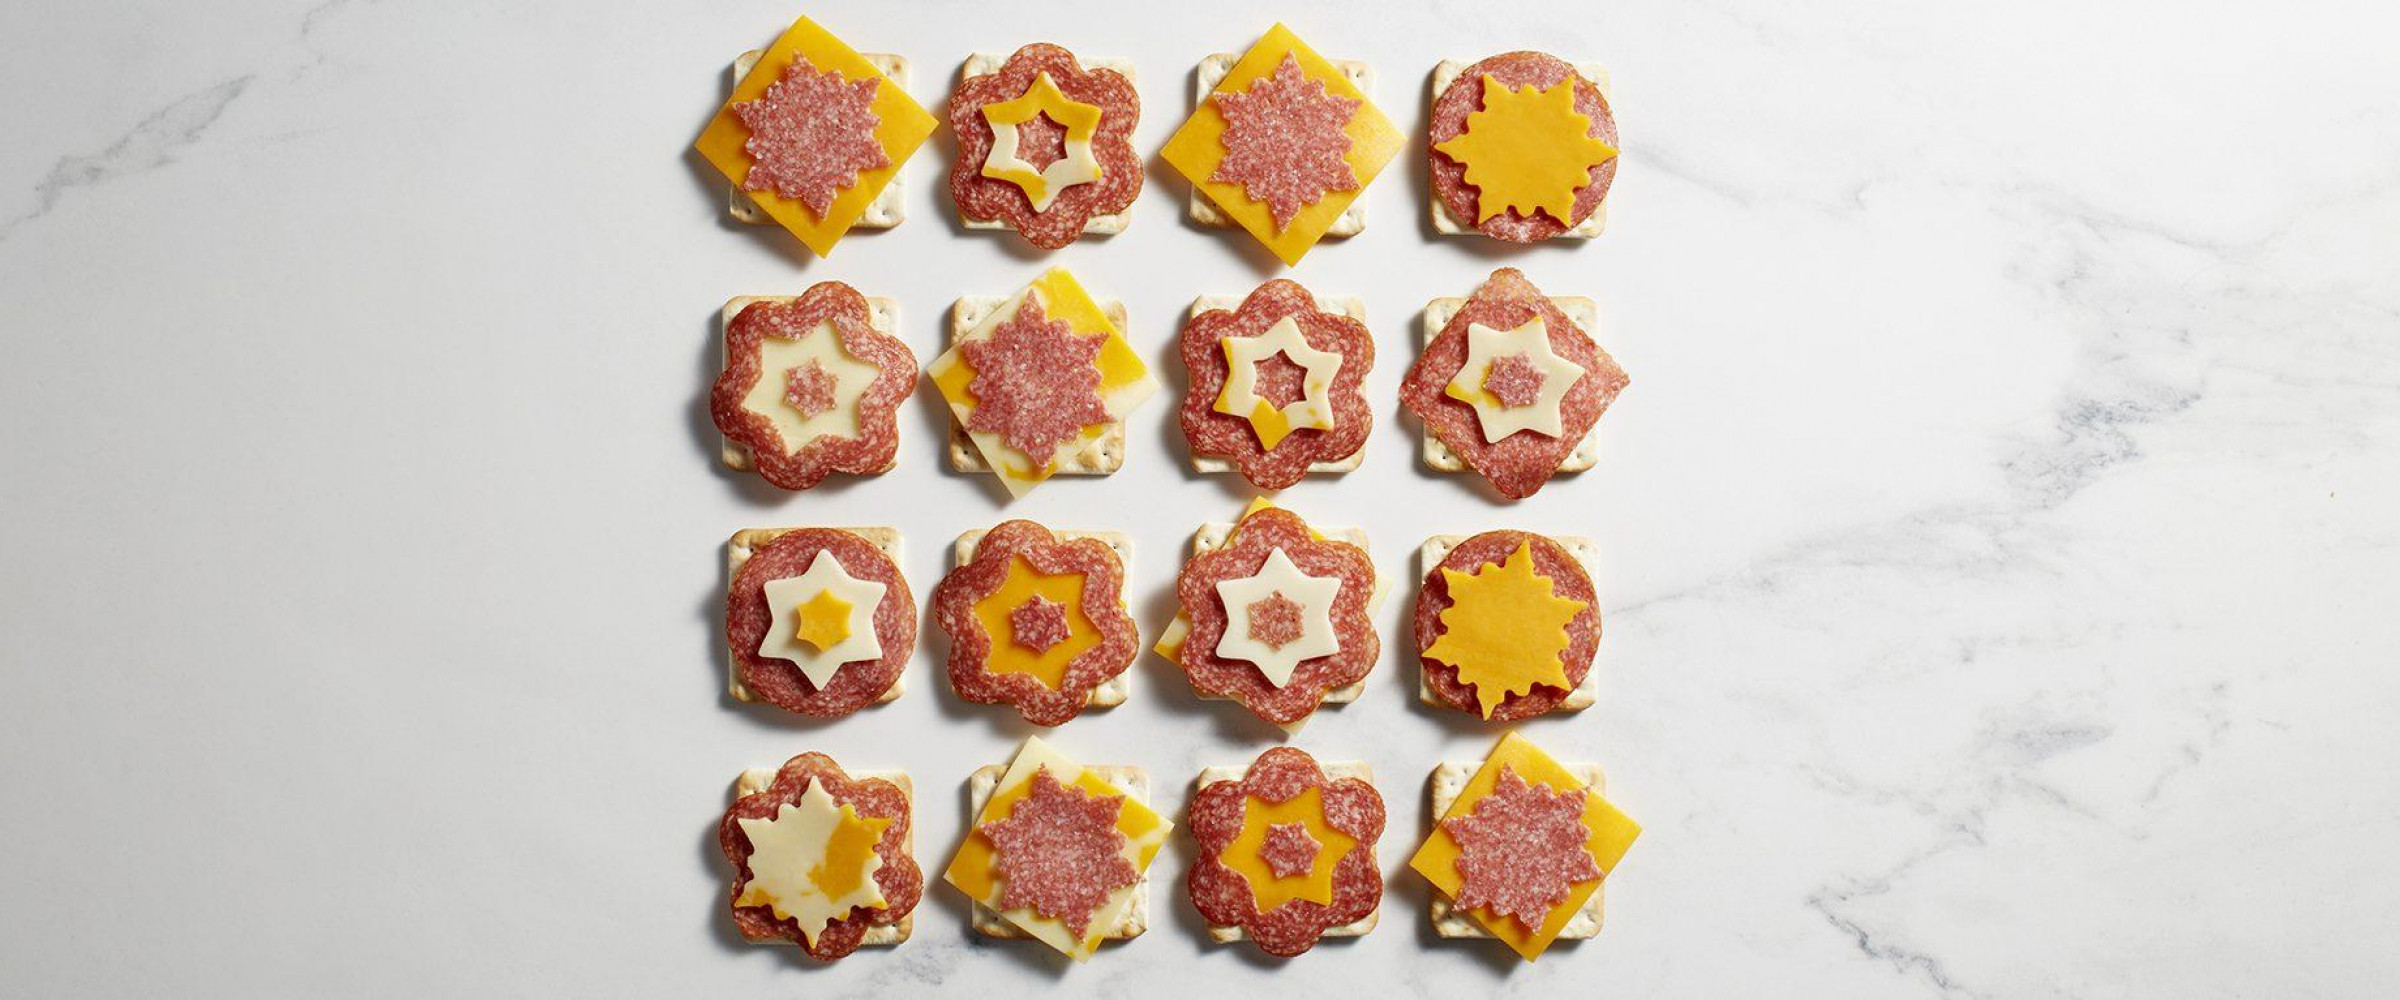 Salami and cheese and crackers cut into snowflake shapes